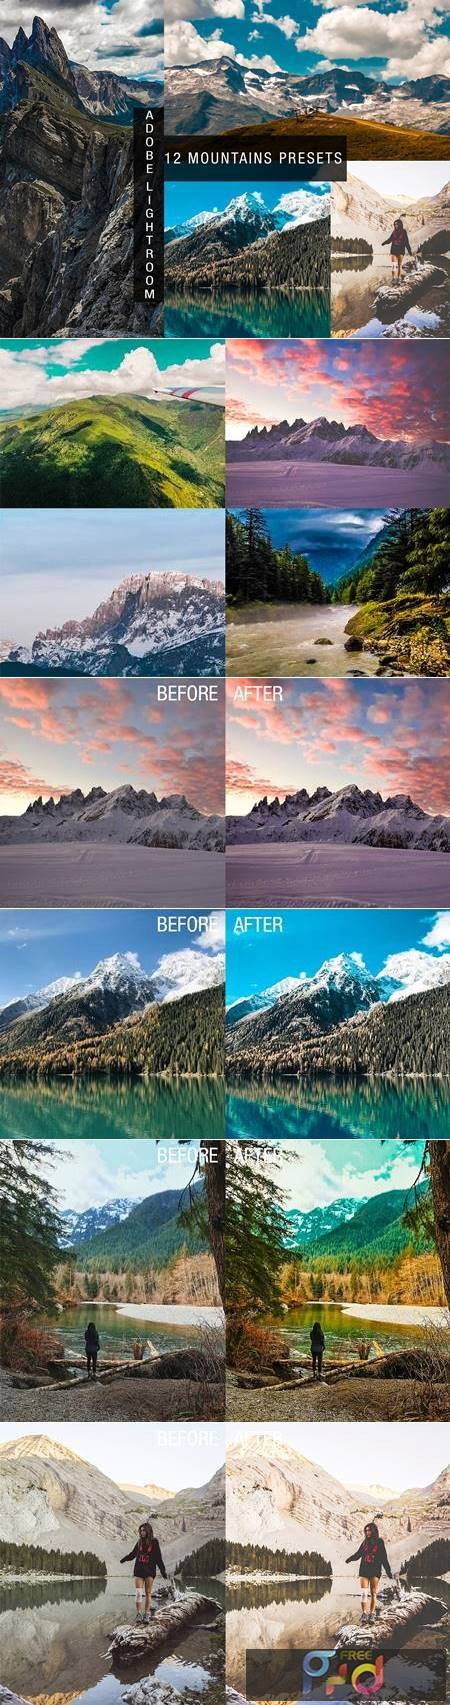 12 mountains lightroom presets 4830949 1